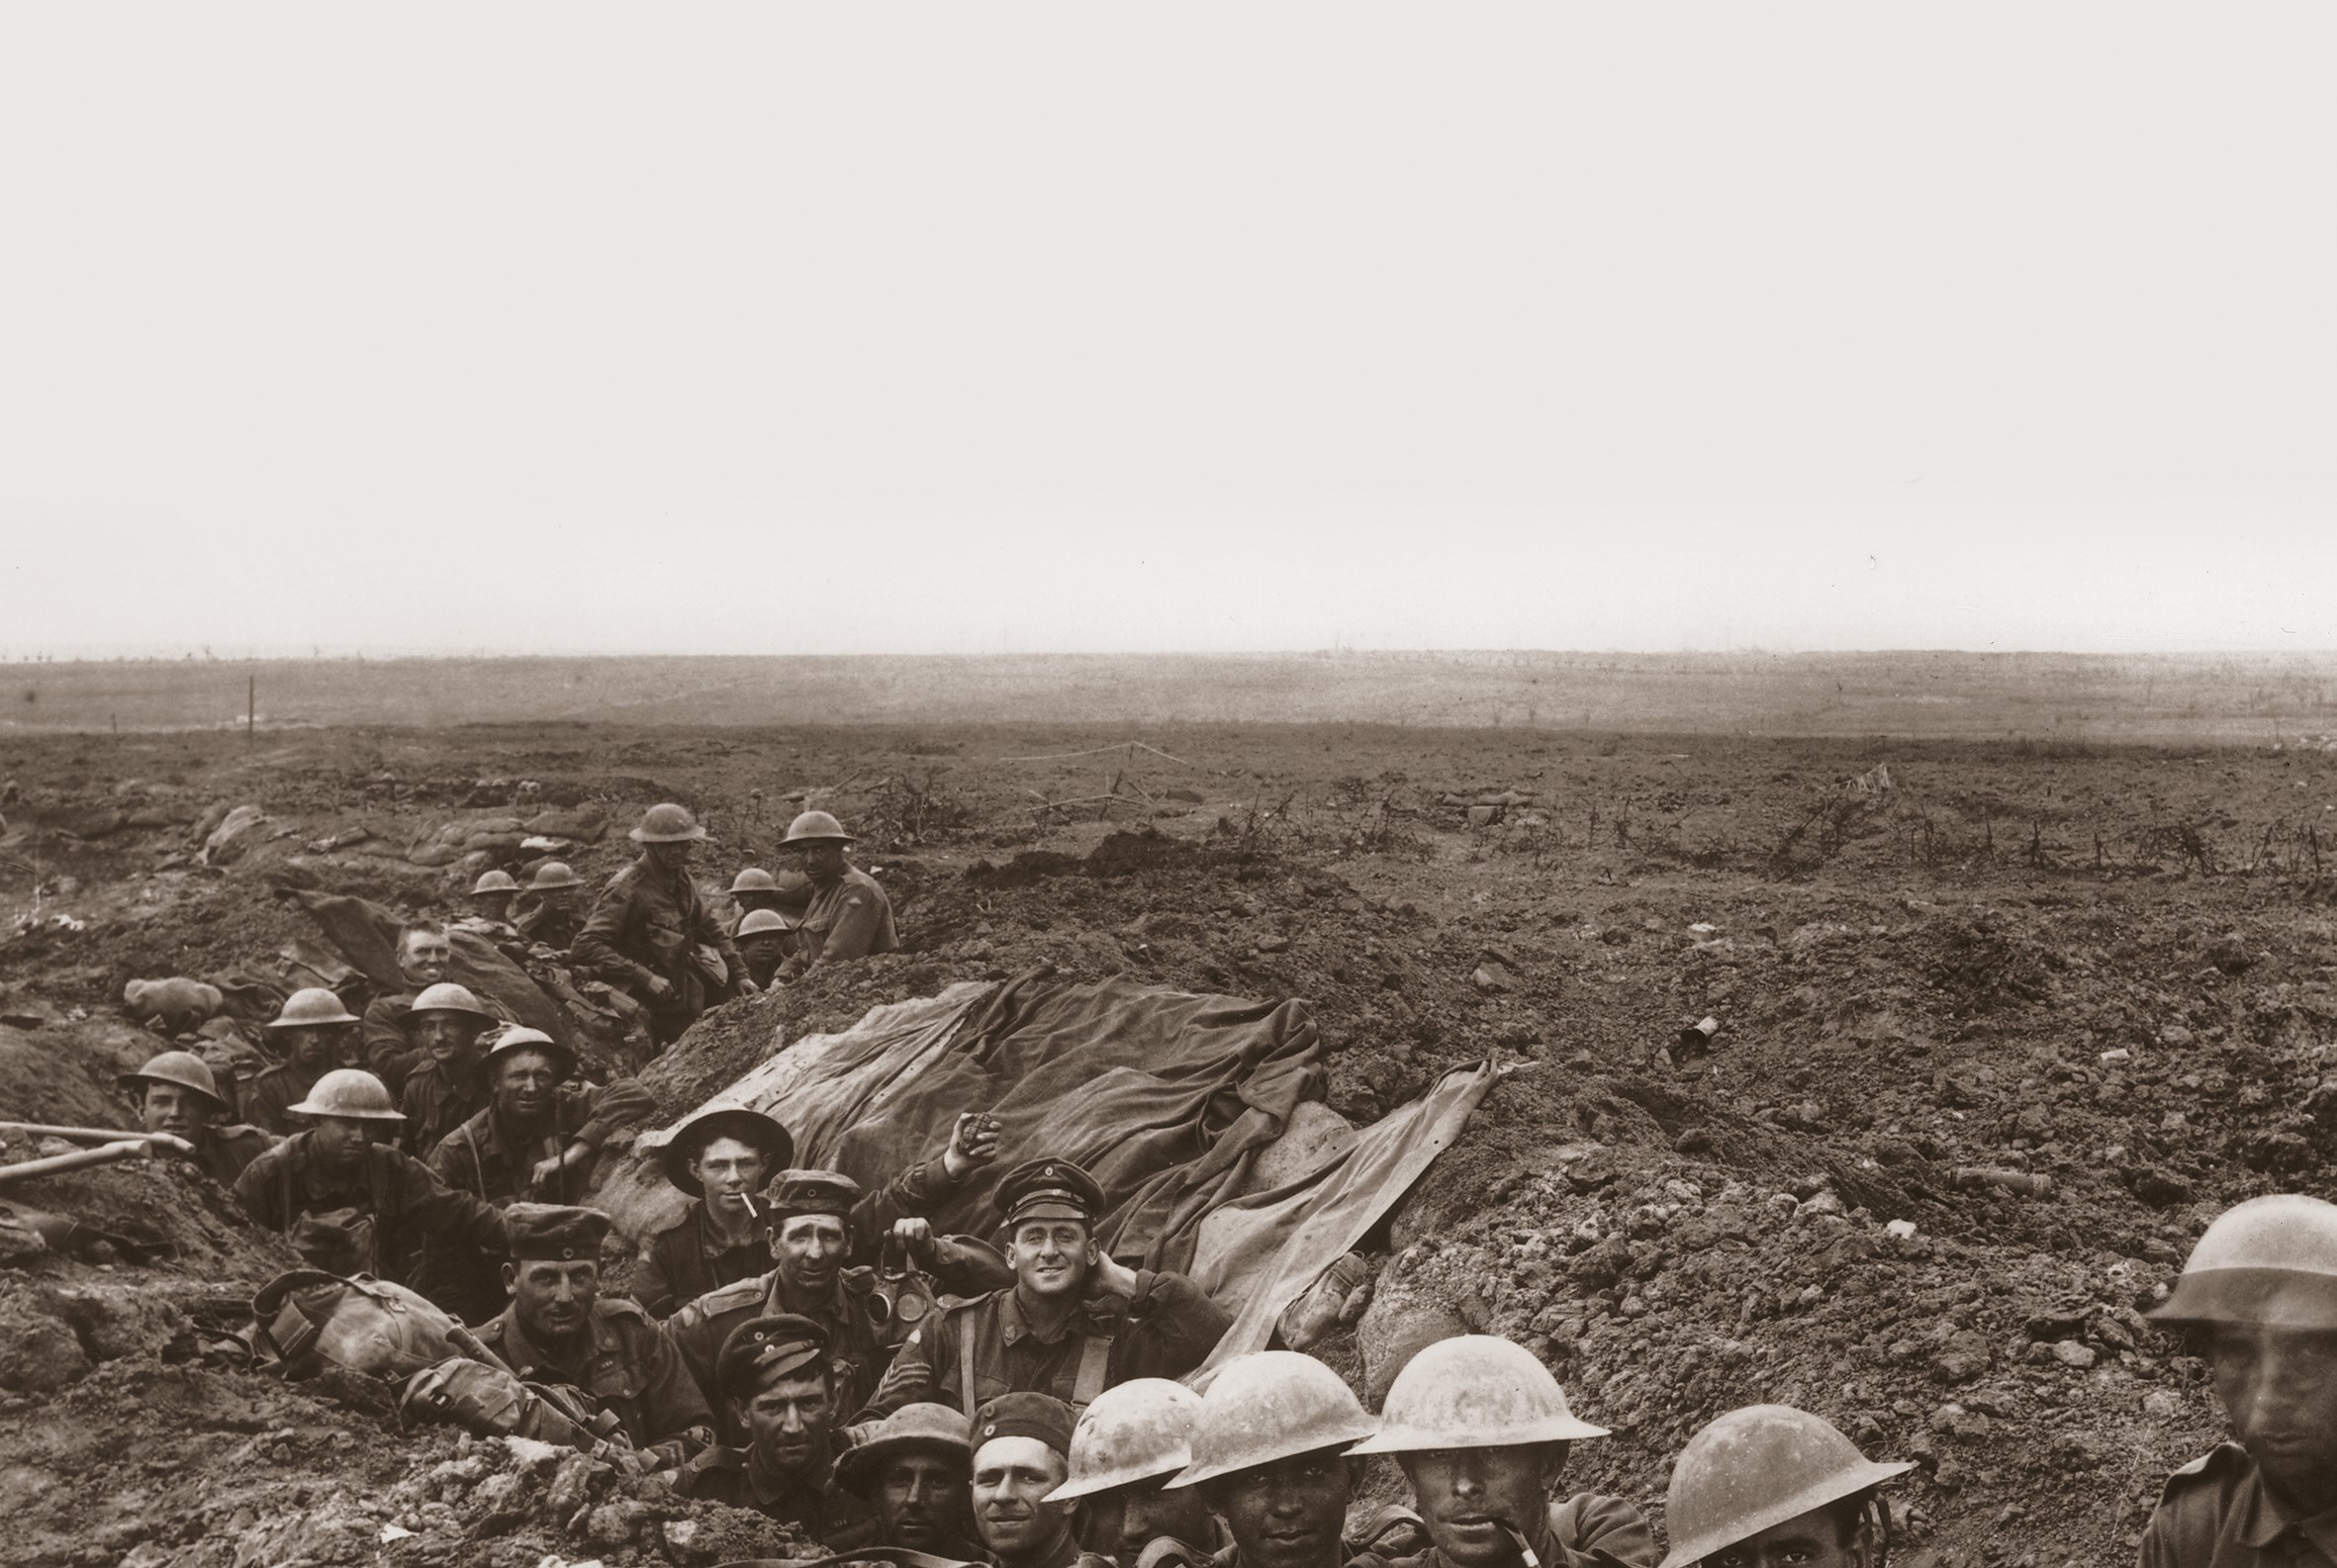 Photographs of the trenches from the In Flanders Fields